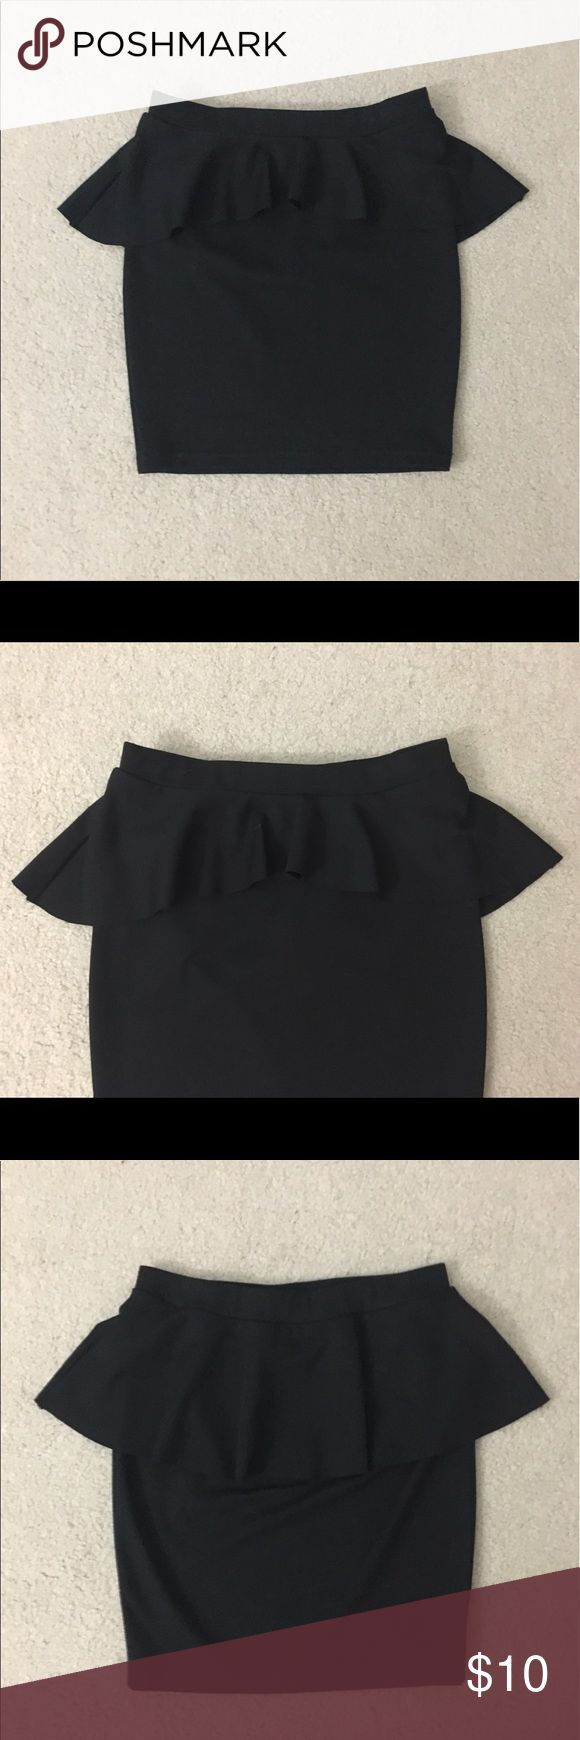 Candie's Black Peplum Skirt Description: Black peplum skirt that ends above the knee; slightly stretchy waist. Condition: pre-owned, like new. Brand: Candie's. Size: XS Candie's Skirts Pencil